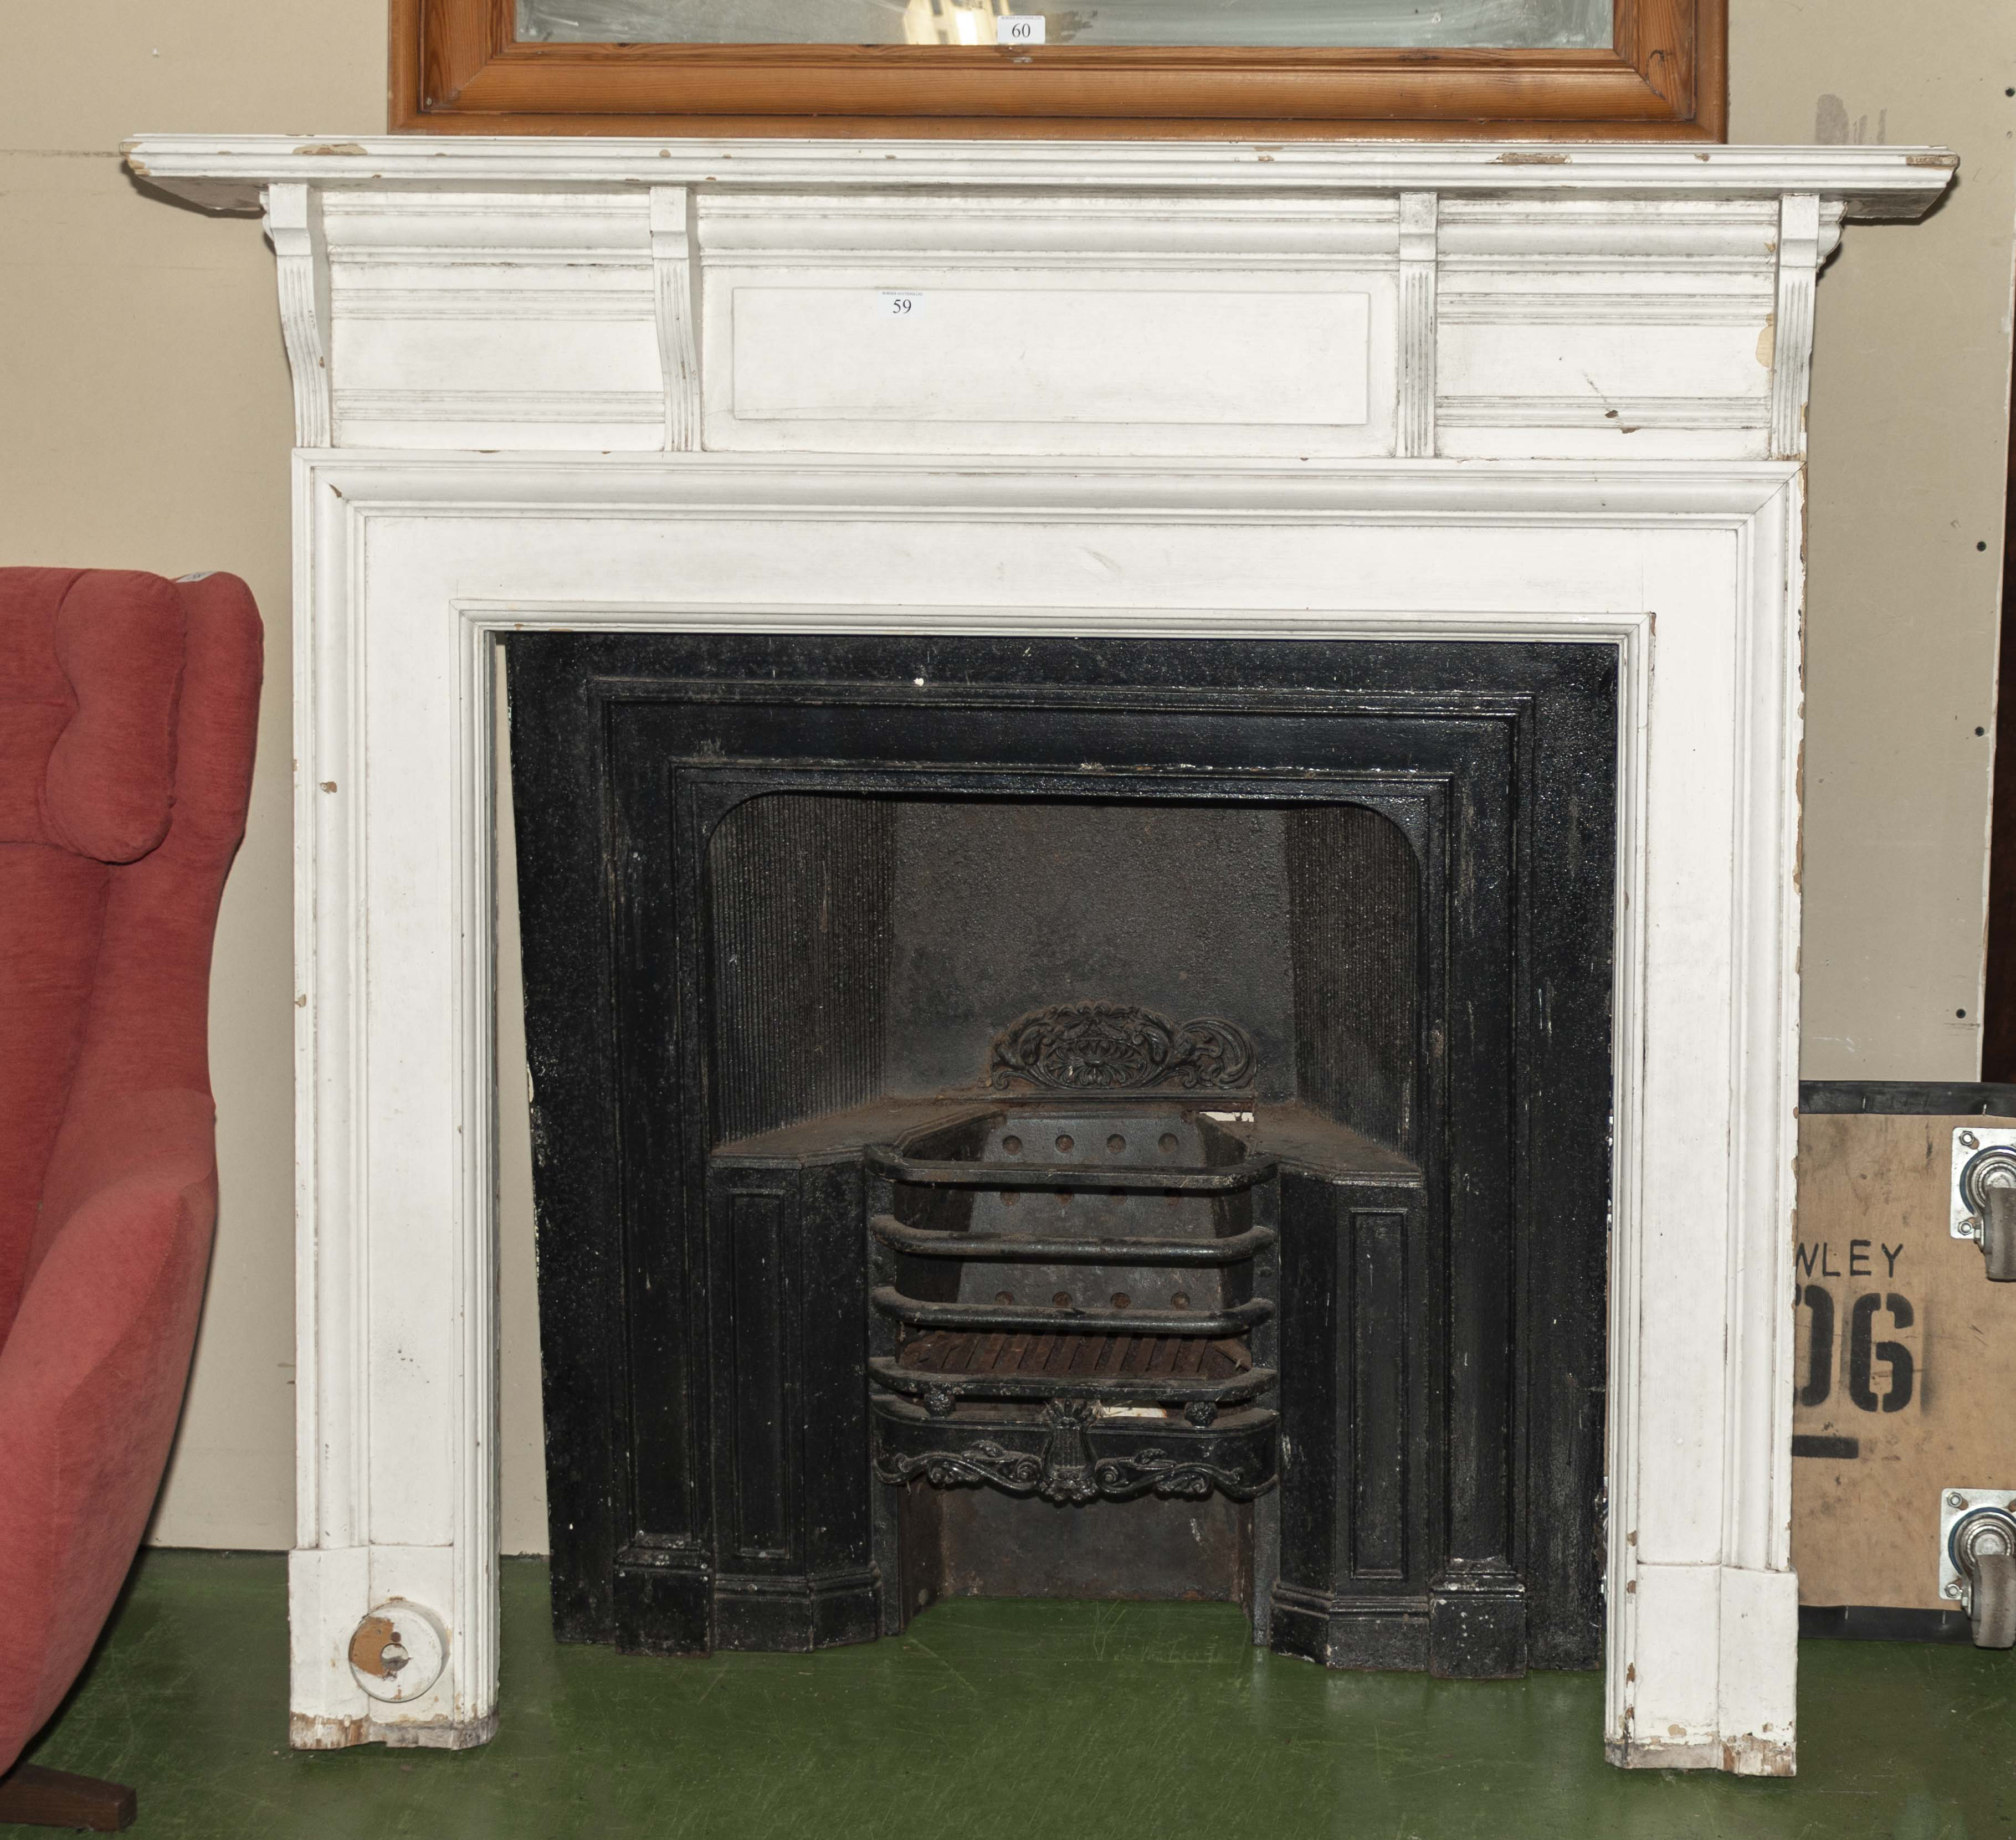 Lot 59 - Fire place and insert